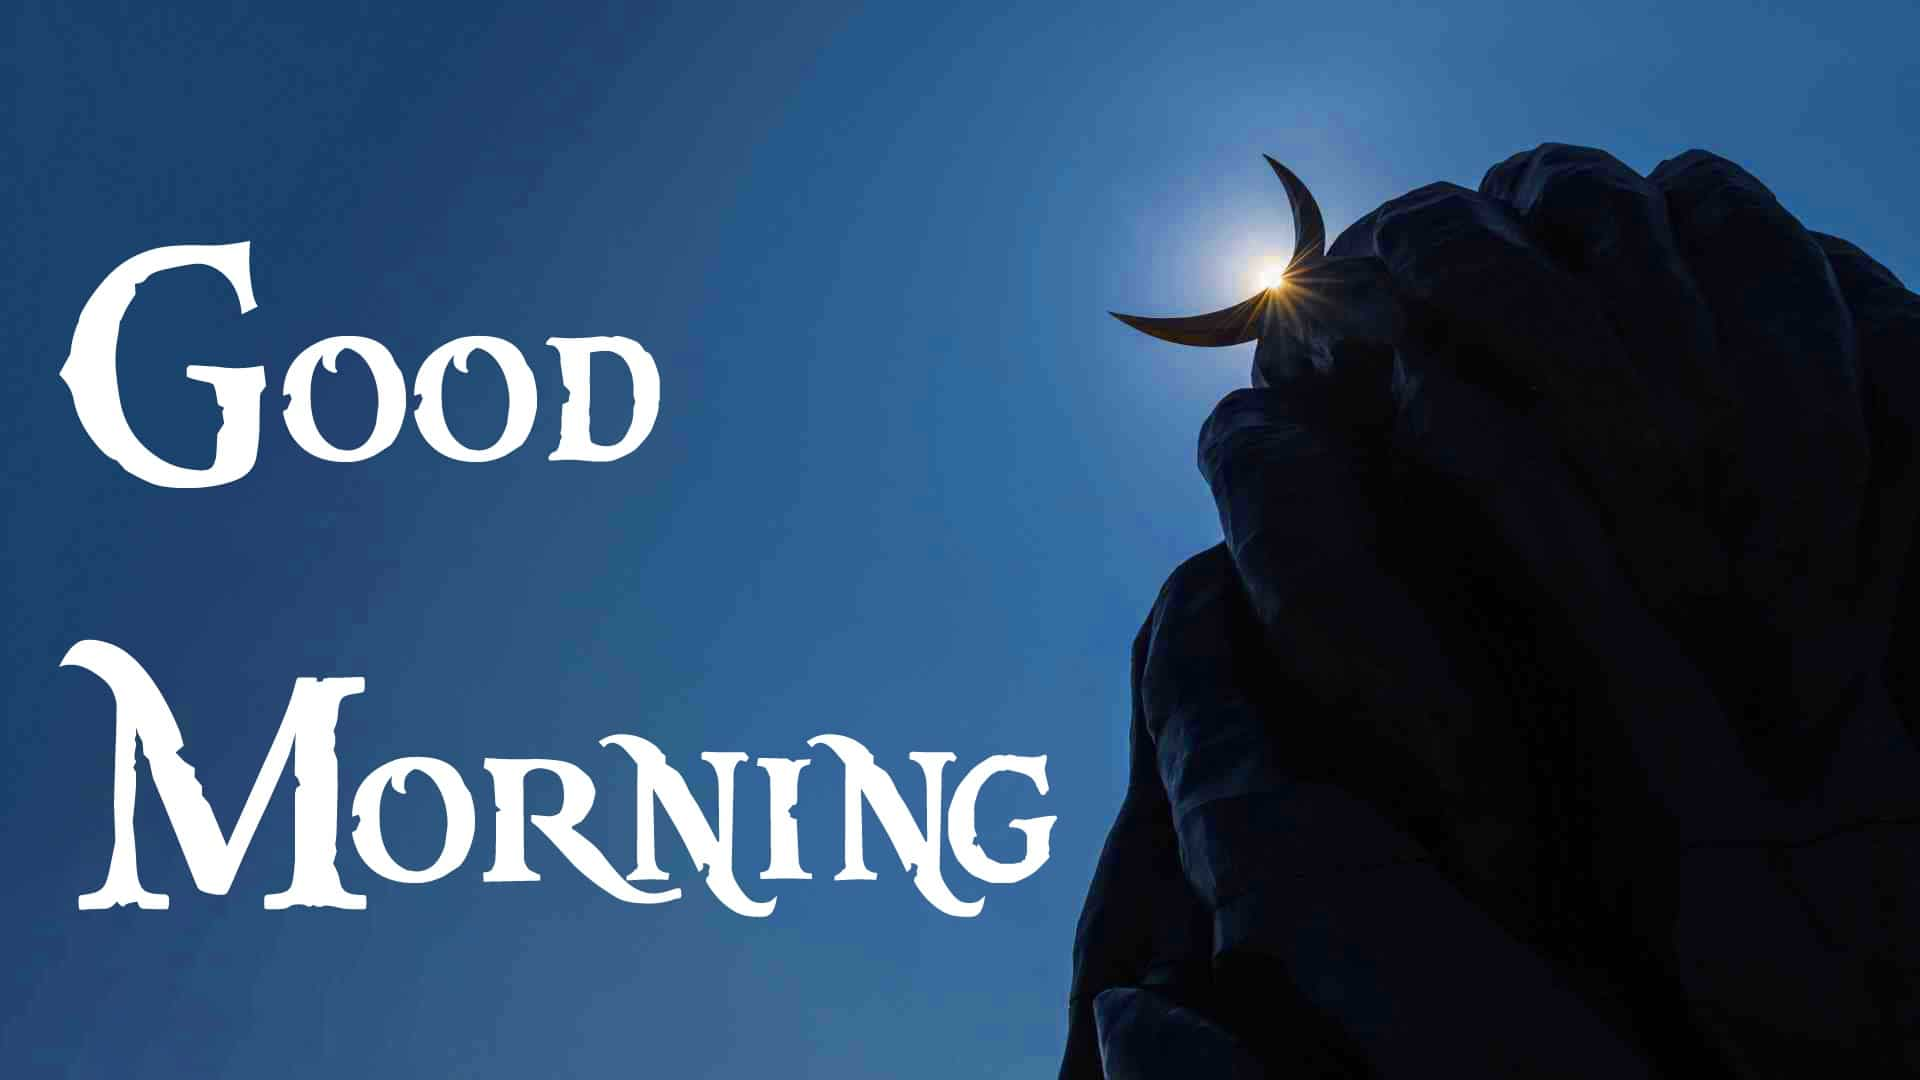 Shiva Good Mornign Wallpaper 3